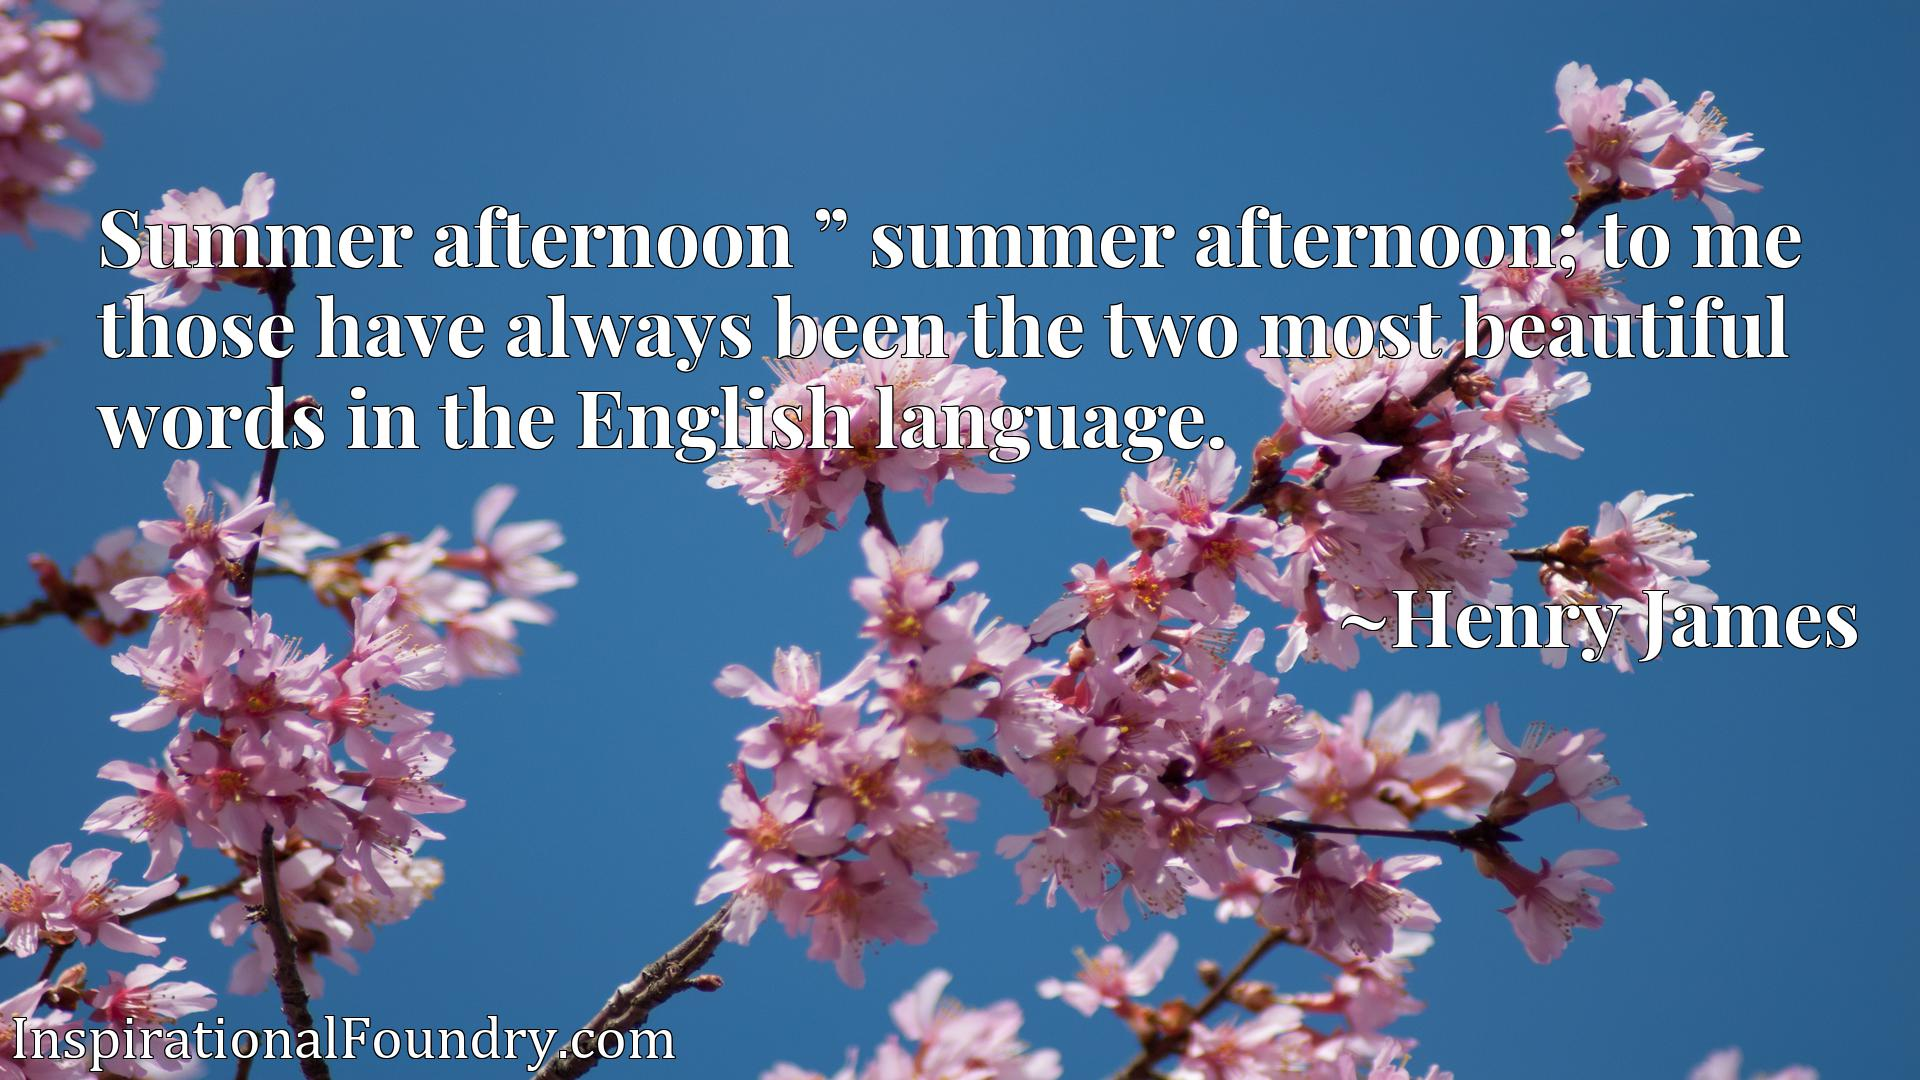 """Summer afternoon """" summer afternoon; to me those have always been the two most beautiful words in the English language."""